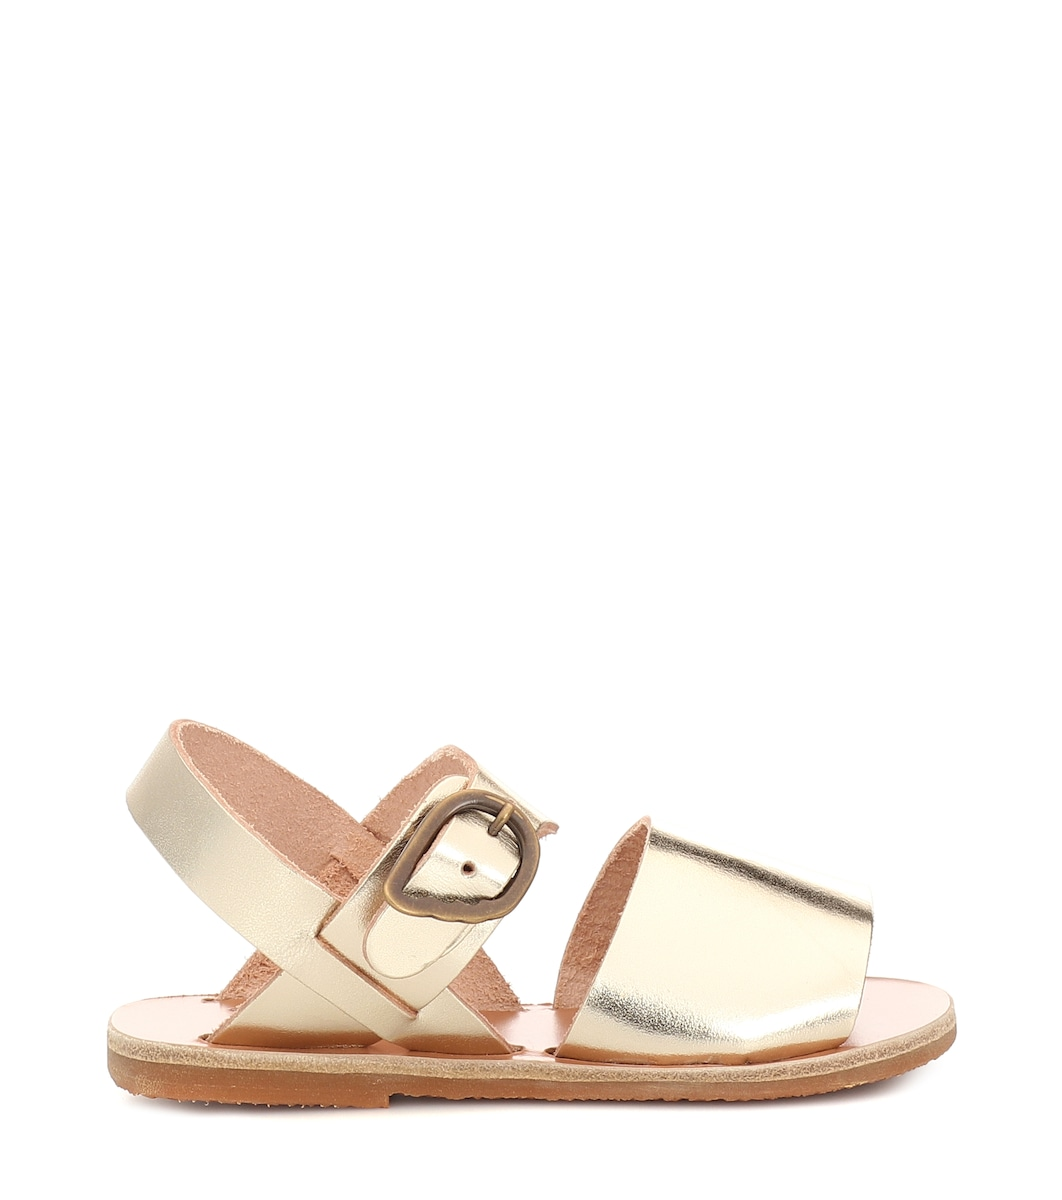 Greek Pelle Kaliroi Little Sandali In MetallizzataAncient Sandals LUVjqpSzMG